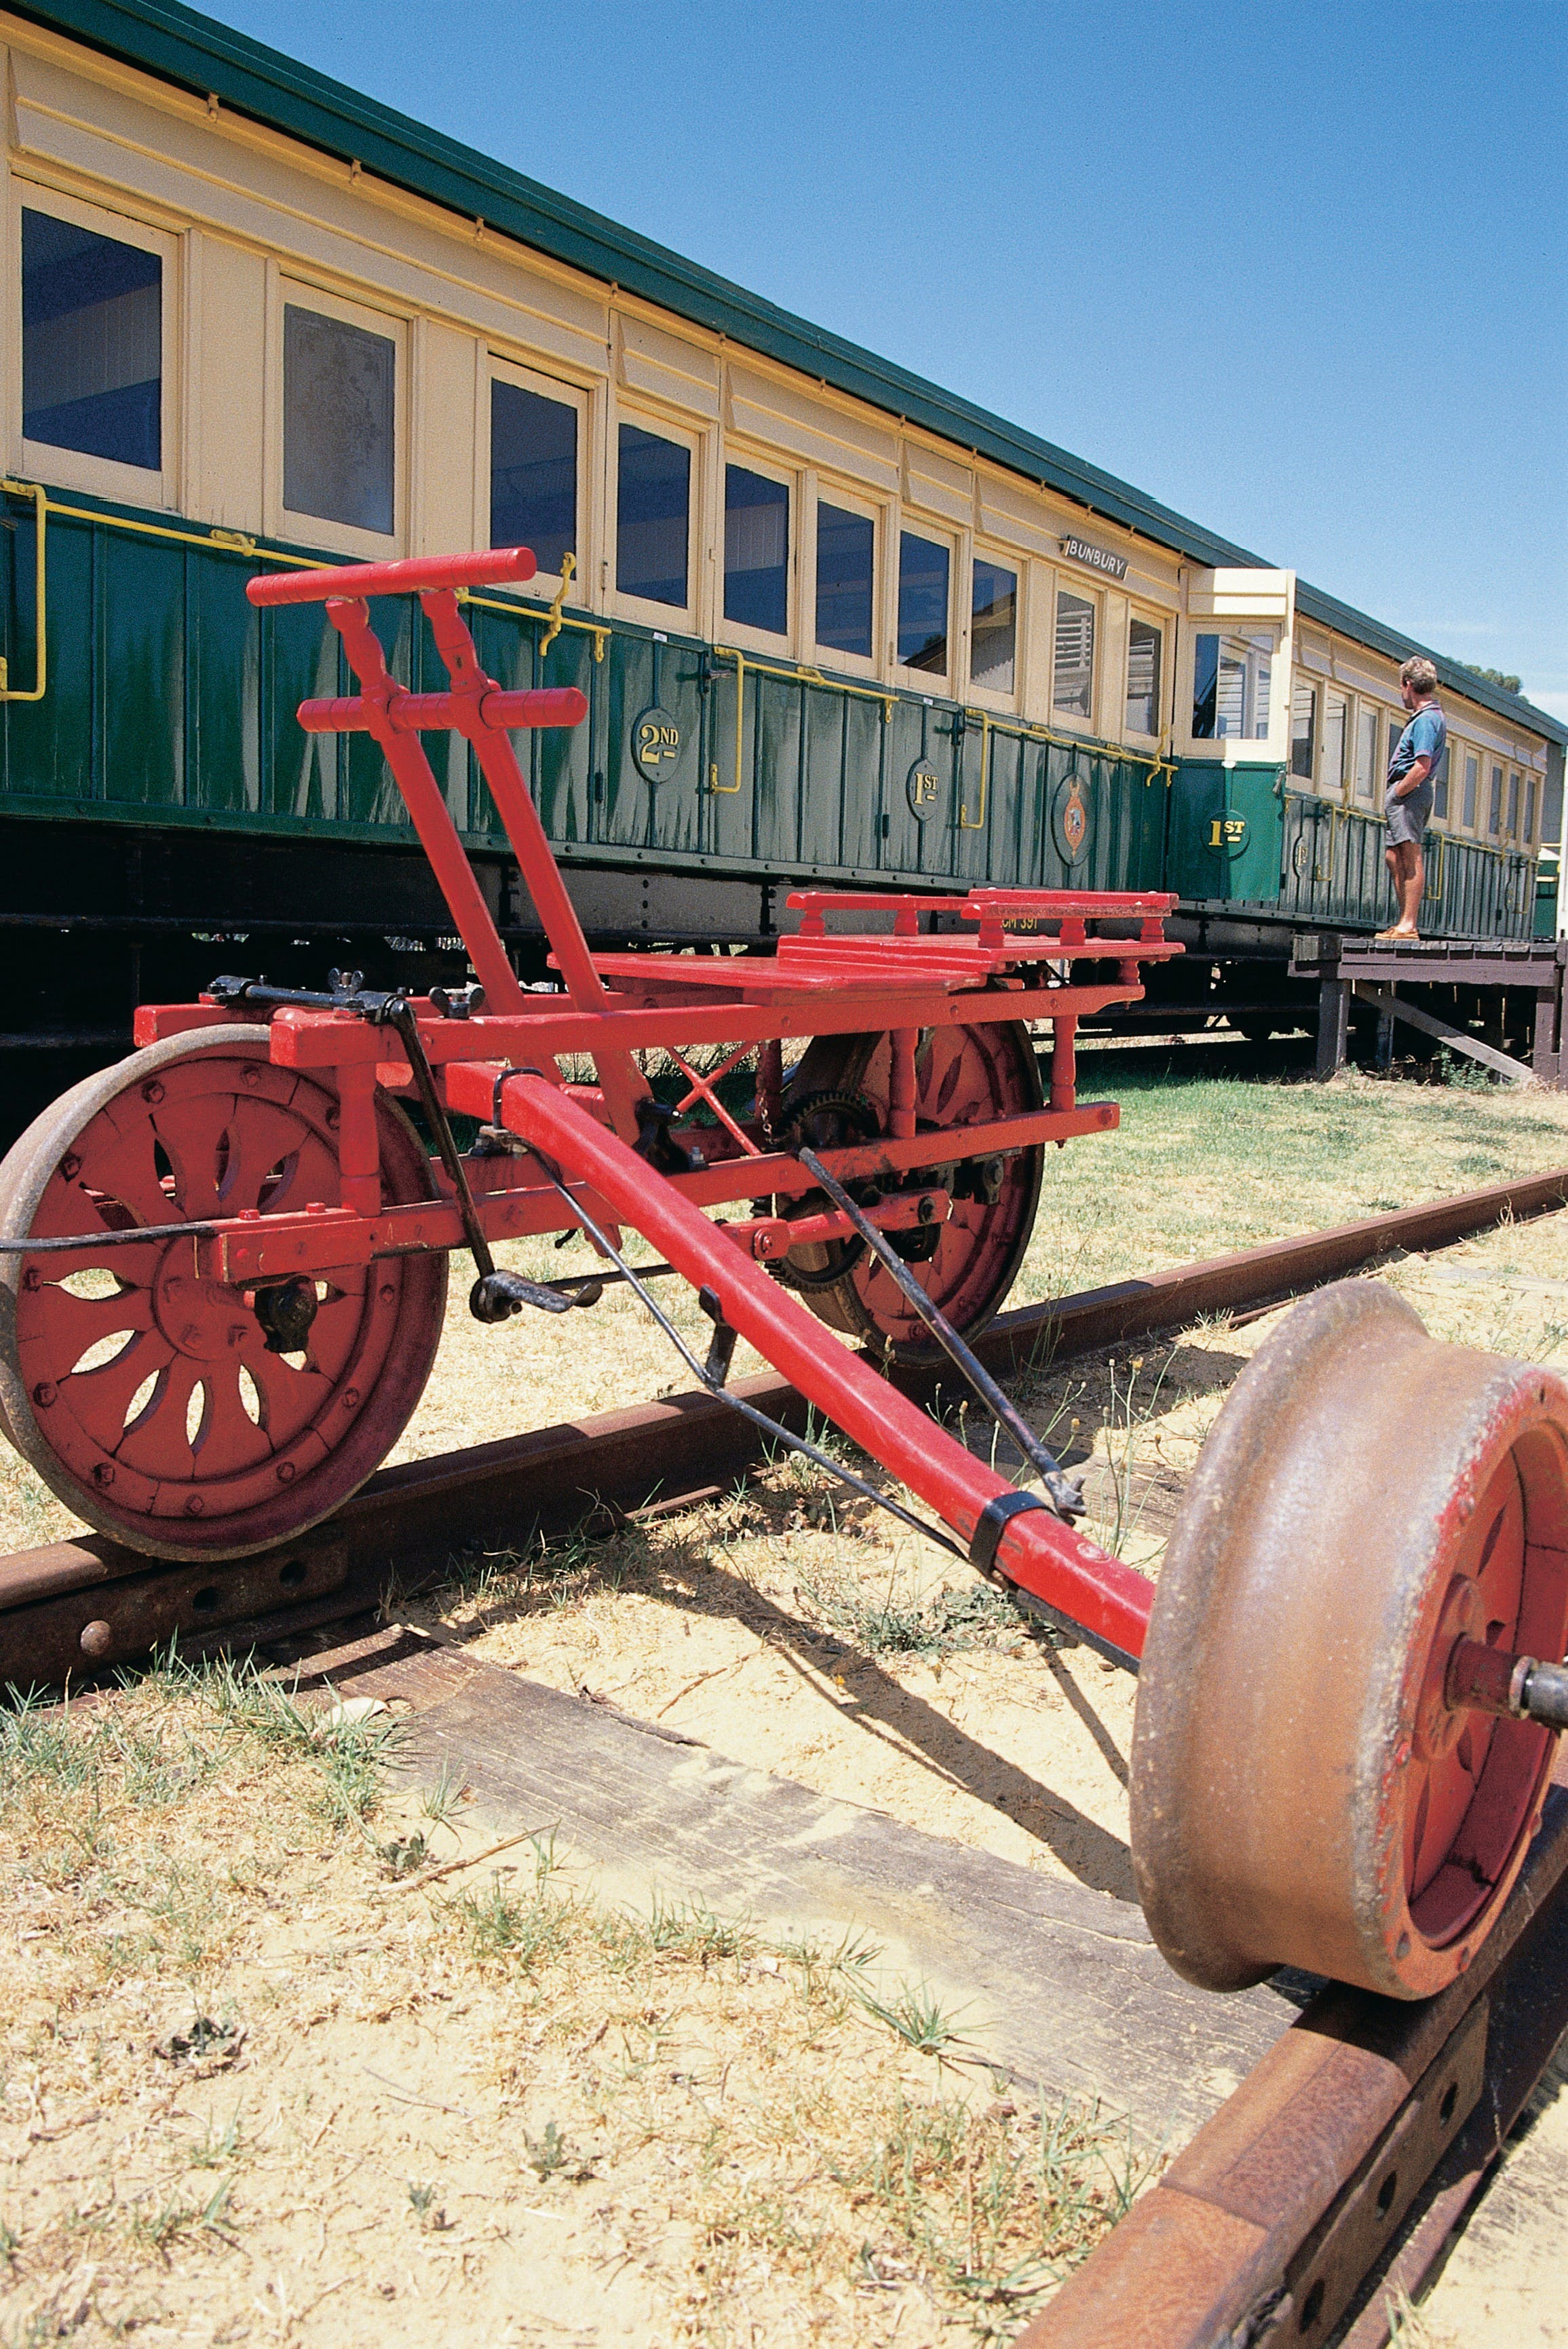 South West Rail and Heritage Centre - Perisher Accommodation